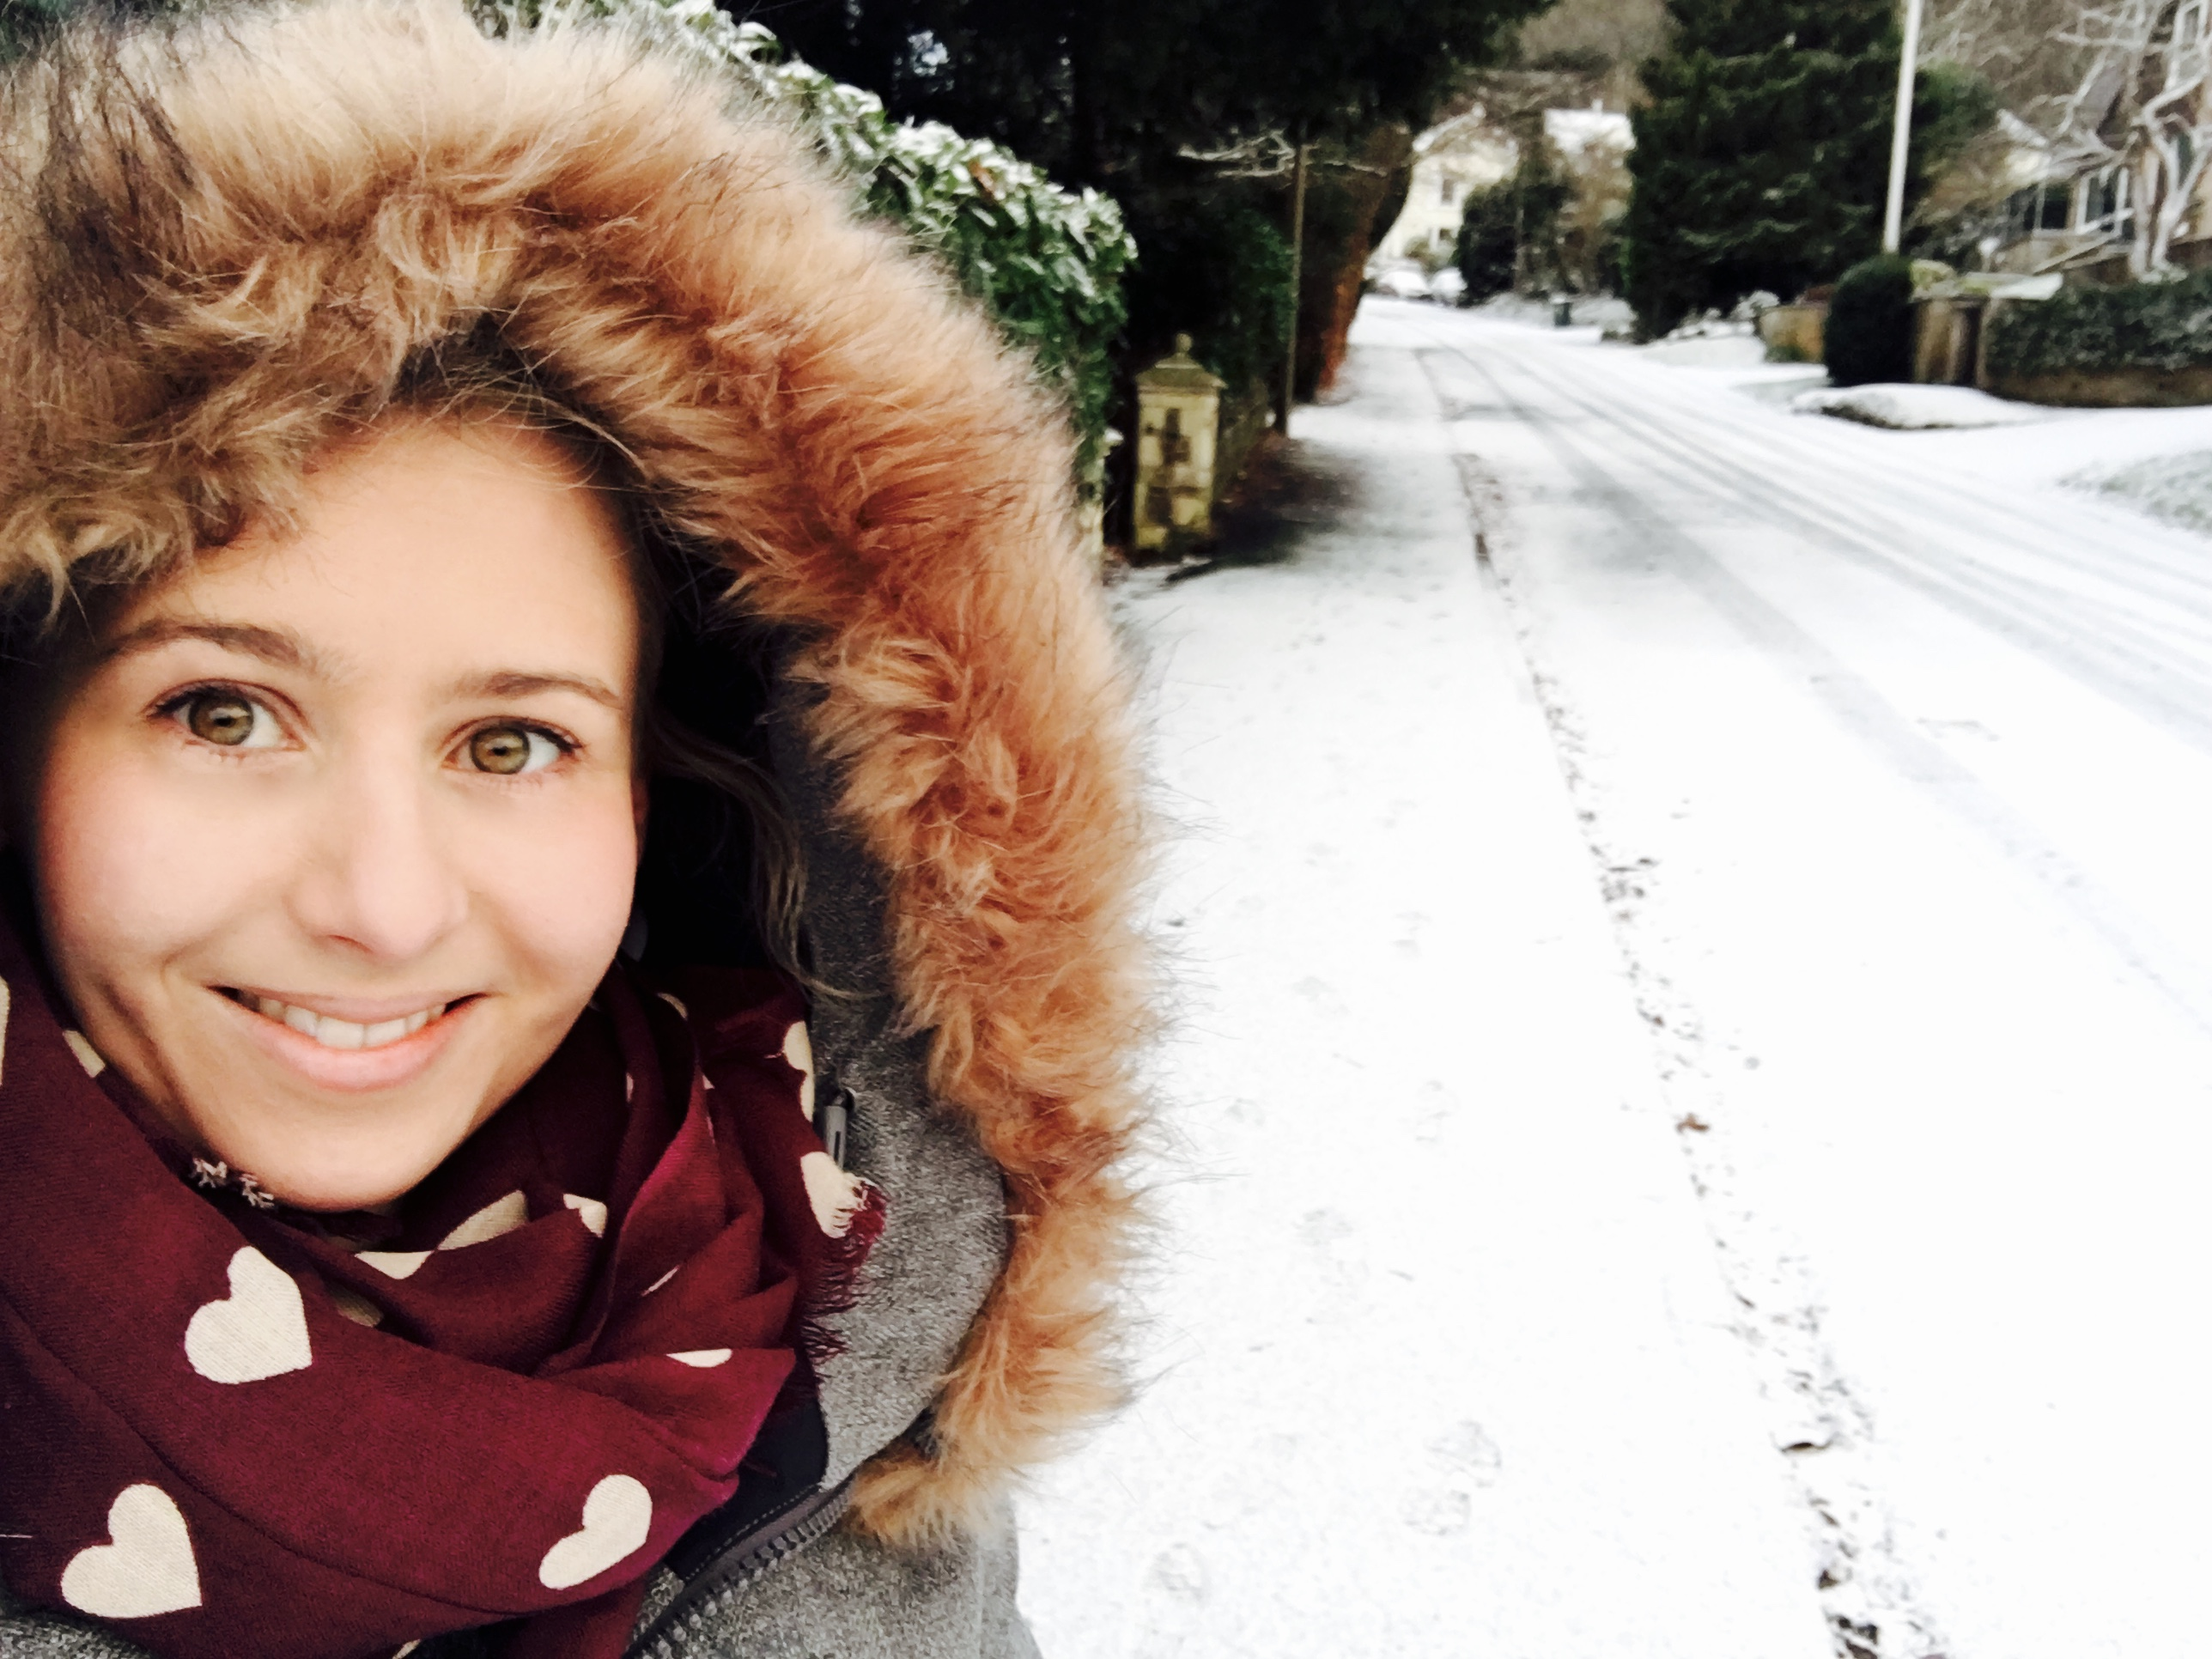 Girl standing in snowy street with scarf and hooded coat on